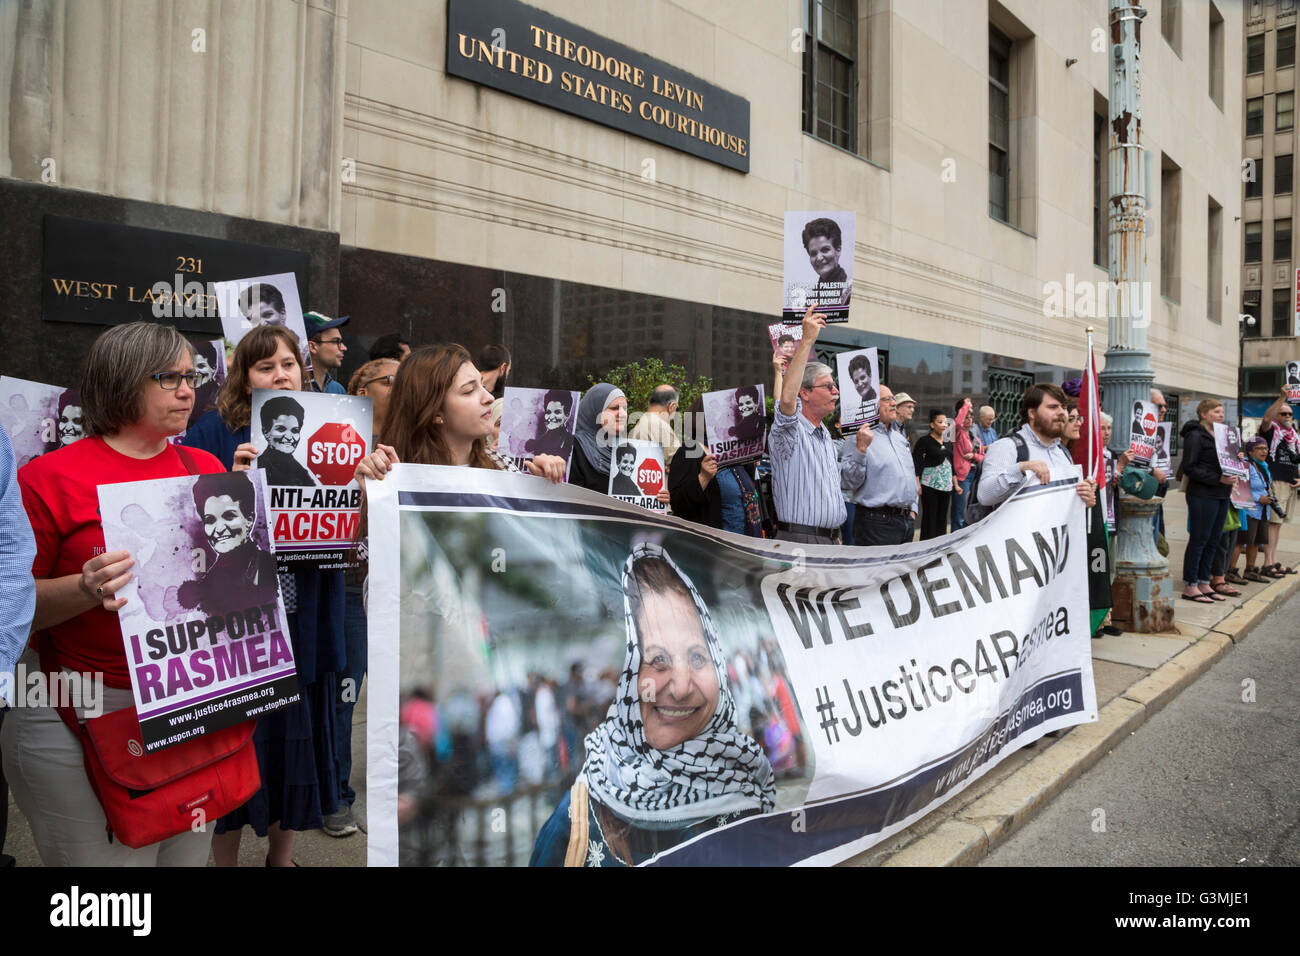 Detroit, Michigan, USA. 13th June, 2016. Supporters of Palestinian-American activist Rasmea Odeh rallied outside Stock Photo